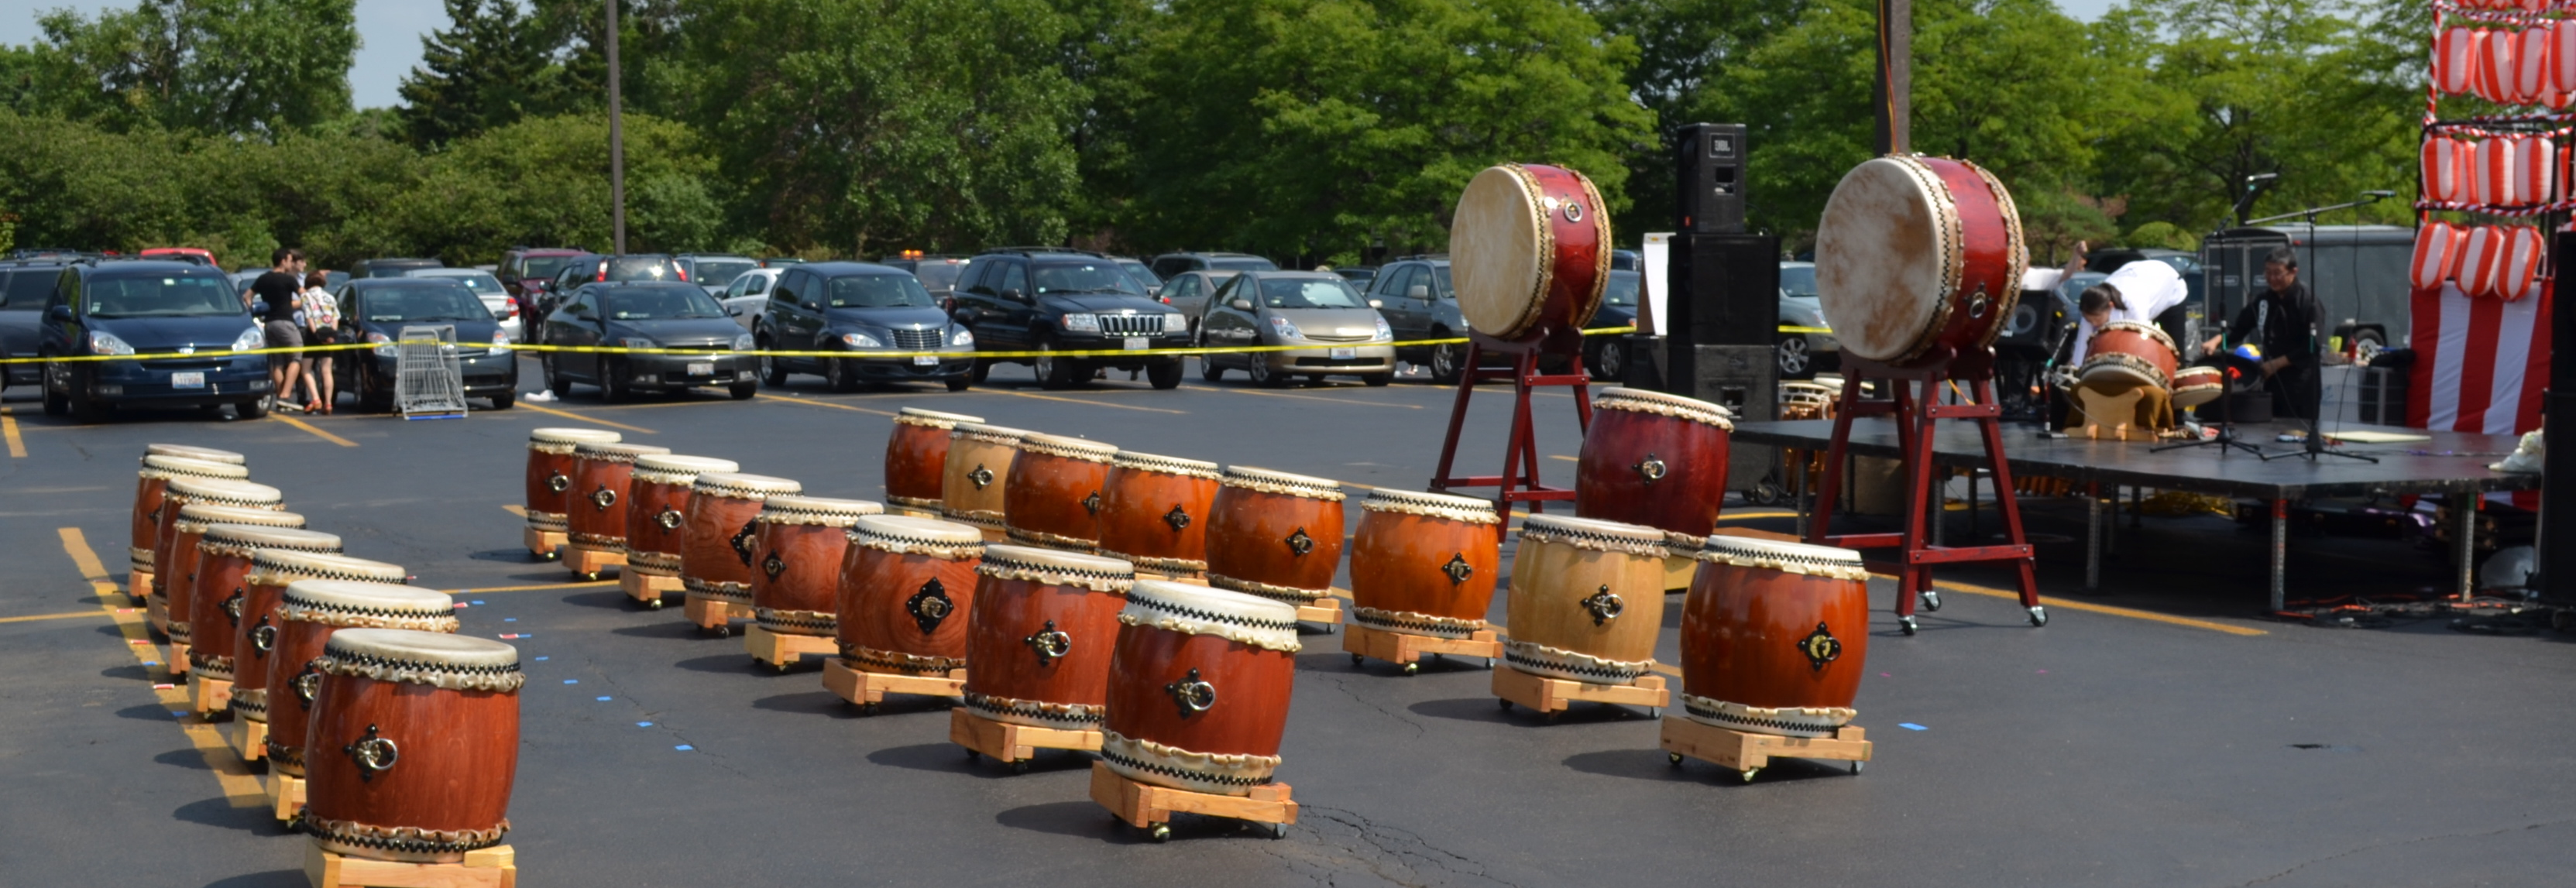 Taiko drums at Mitsui Market, Arlington Heights, IL